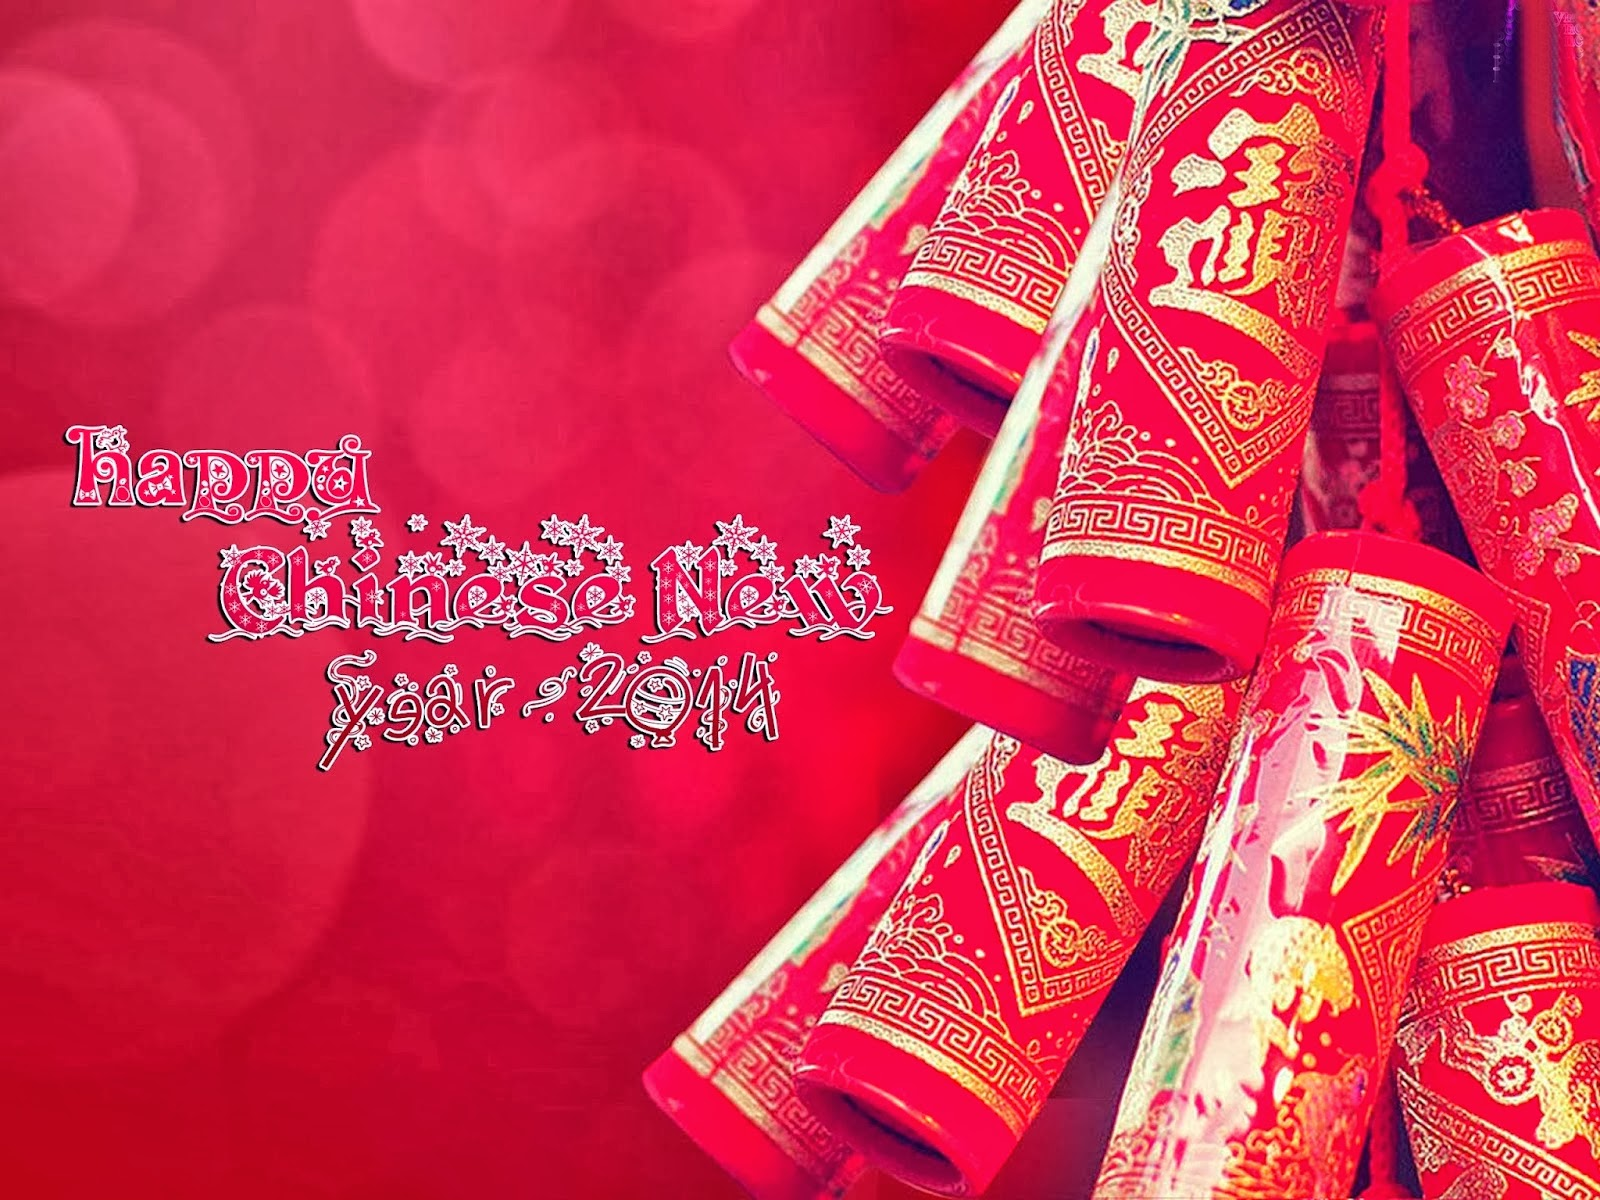 HappyChineseNewYearHappyLunarNewYear2014WishesandGreetings . 1600 x 1200.Lunar New Year Ecard